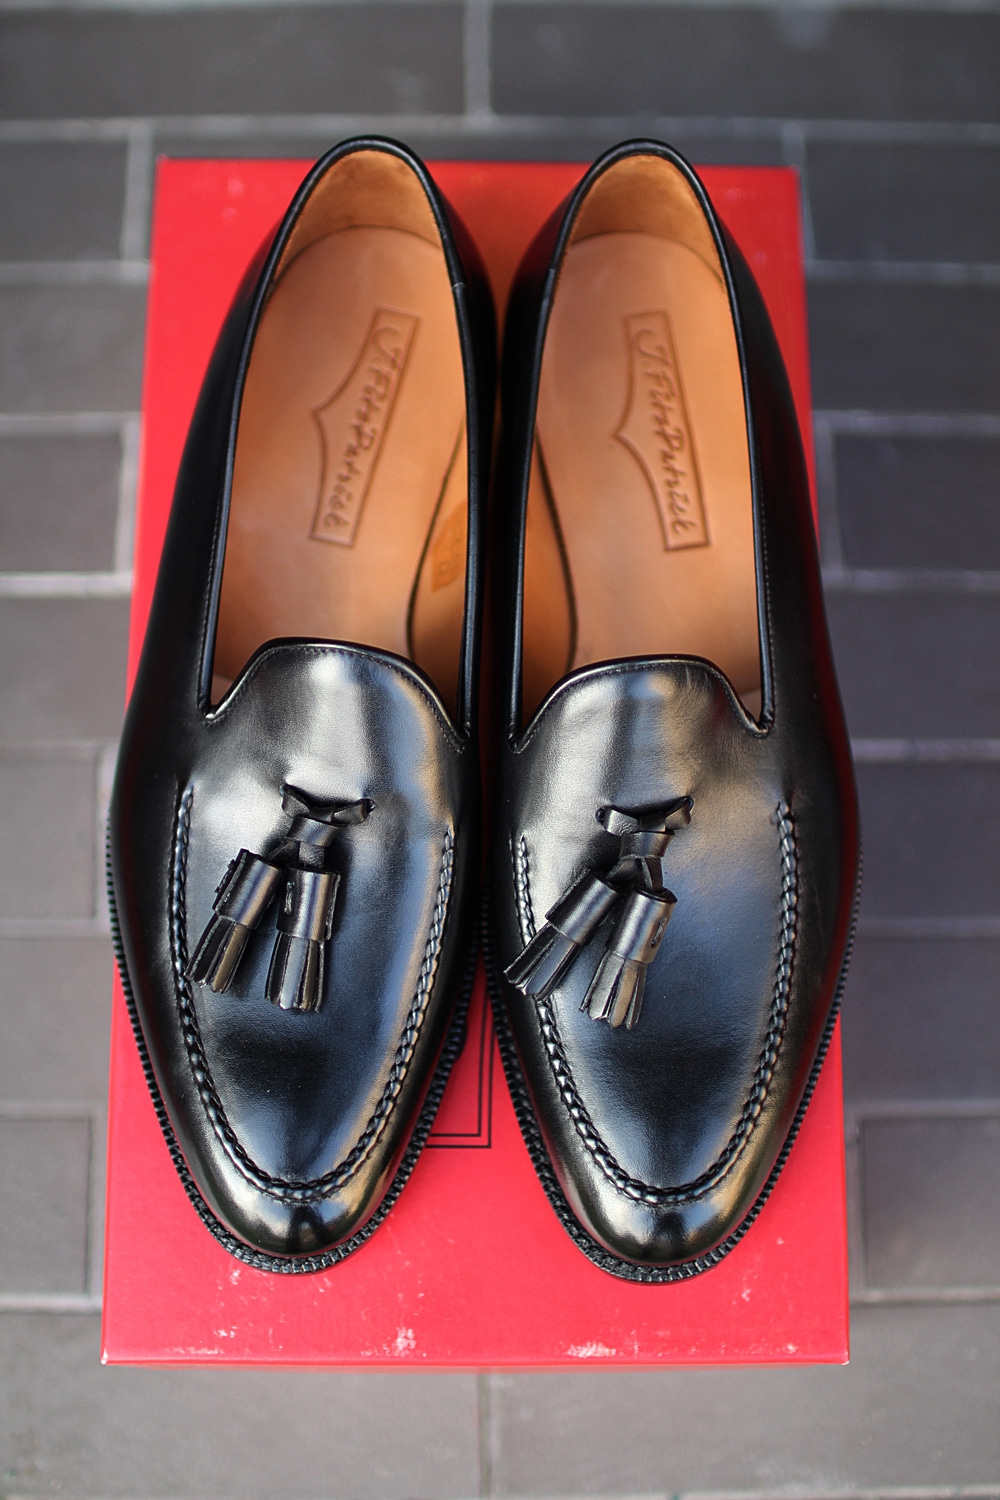 Tassel loafer black LESCHIJ.fitz patrick(제이피츠패트릭)